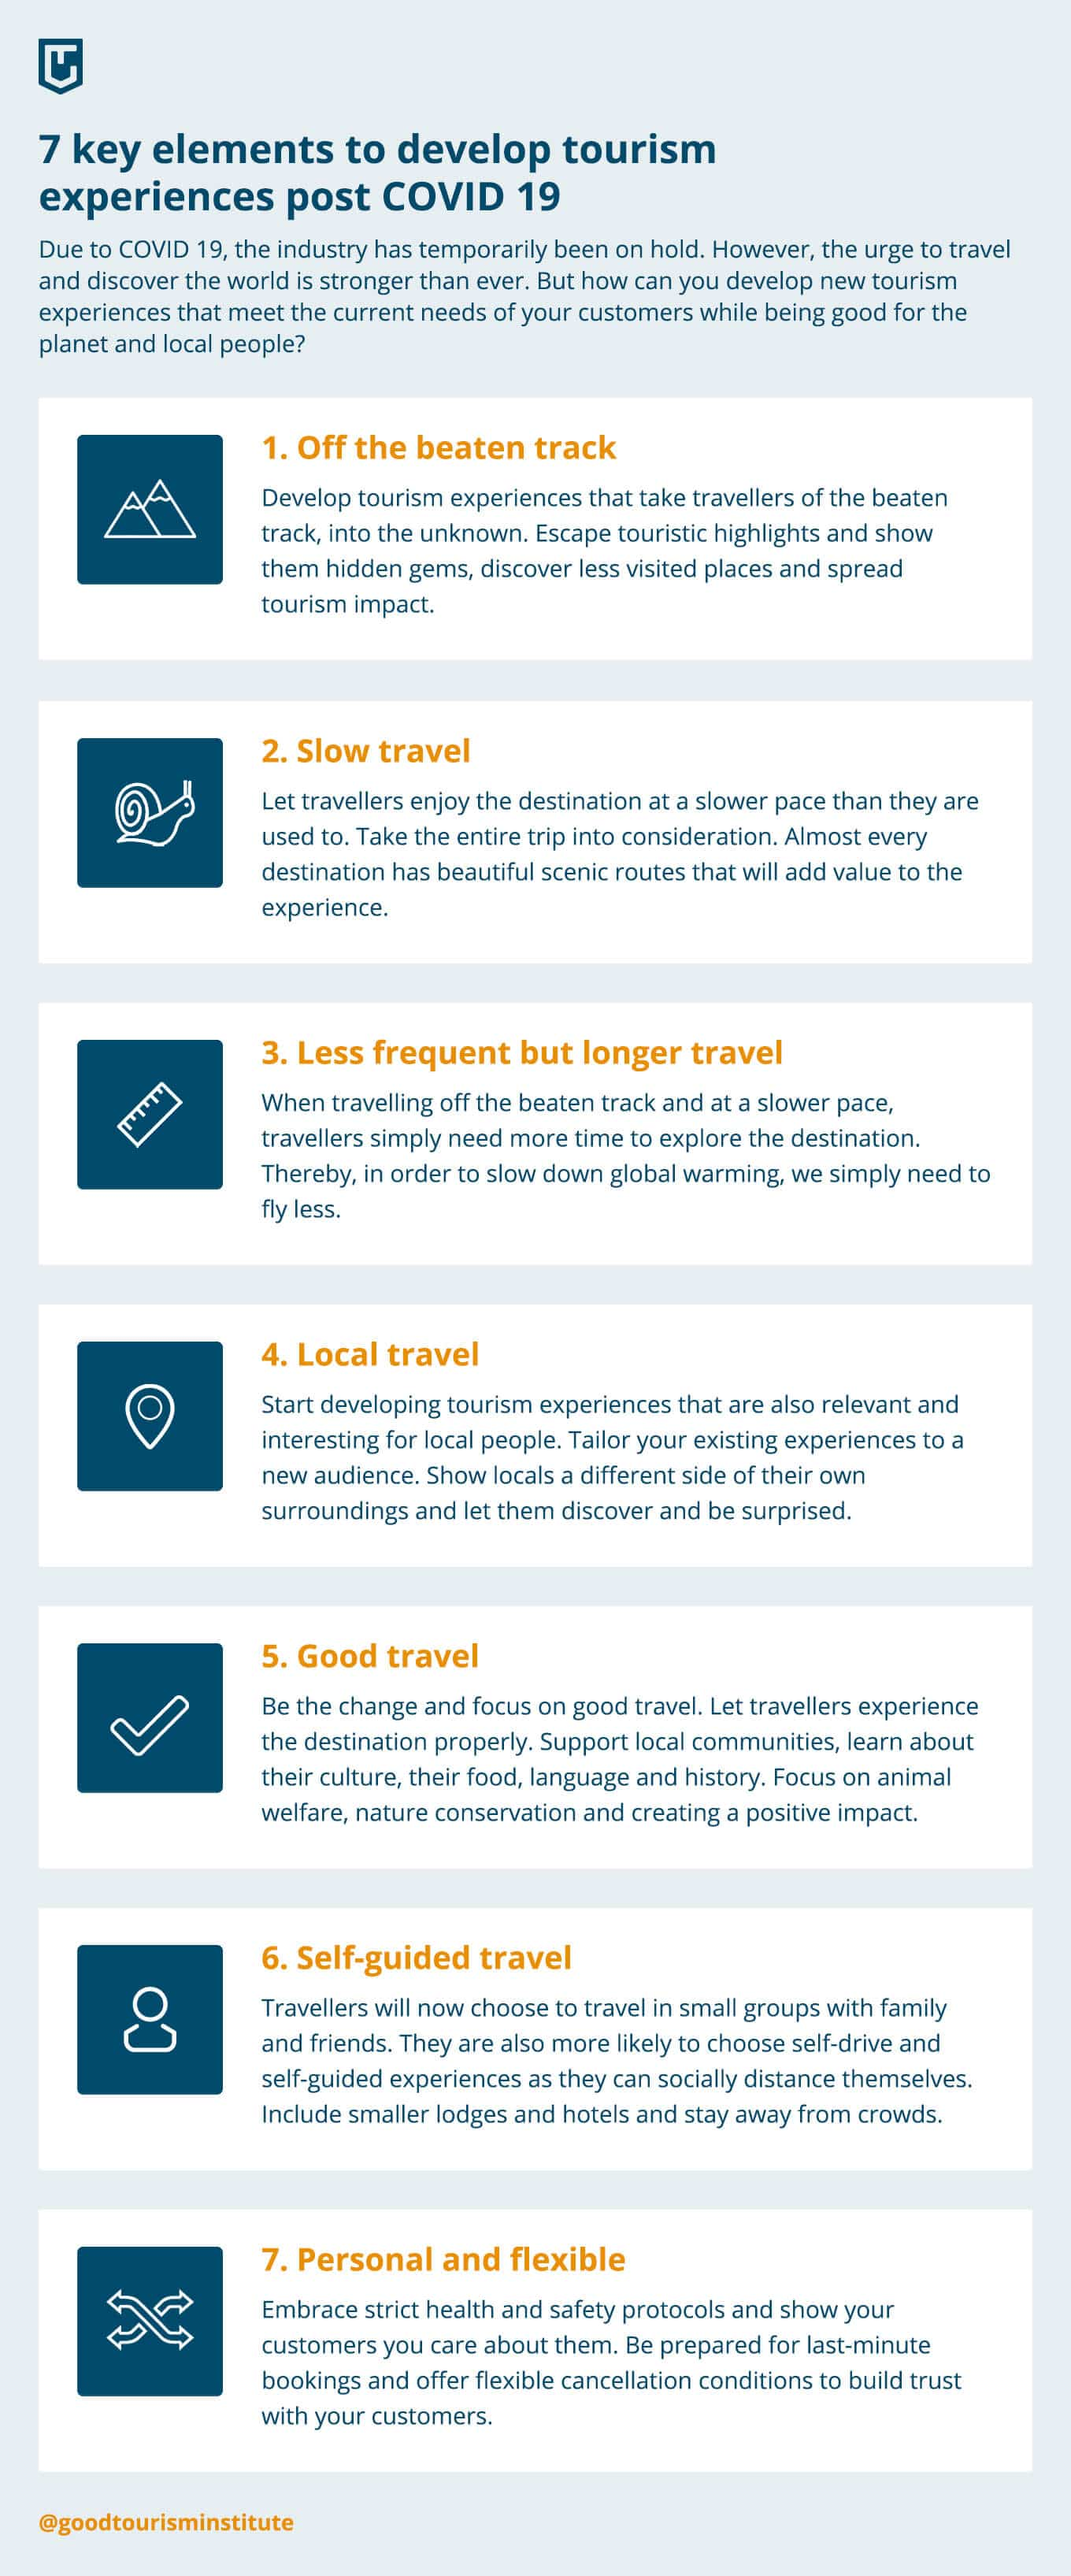 Developing new tourism post COVID 19 (infographic)